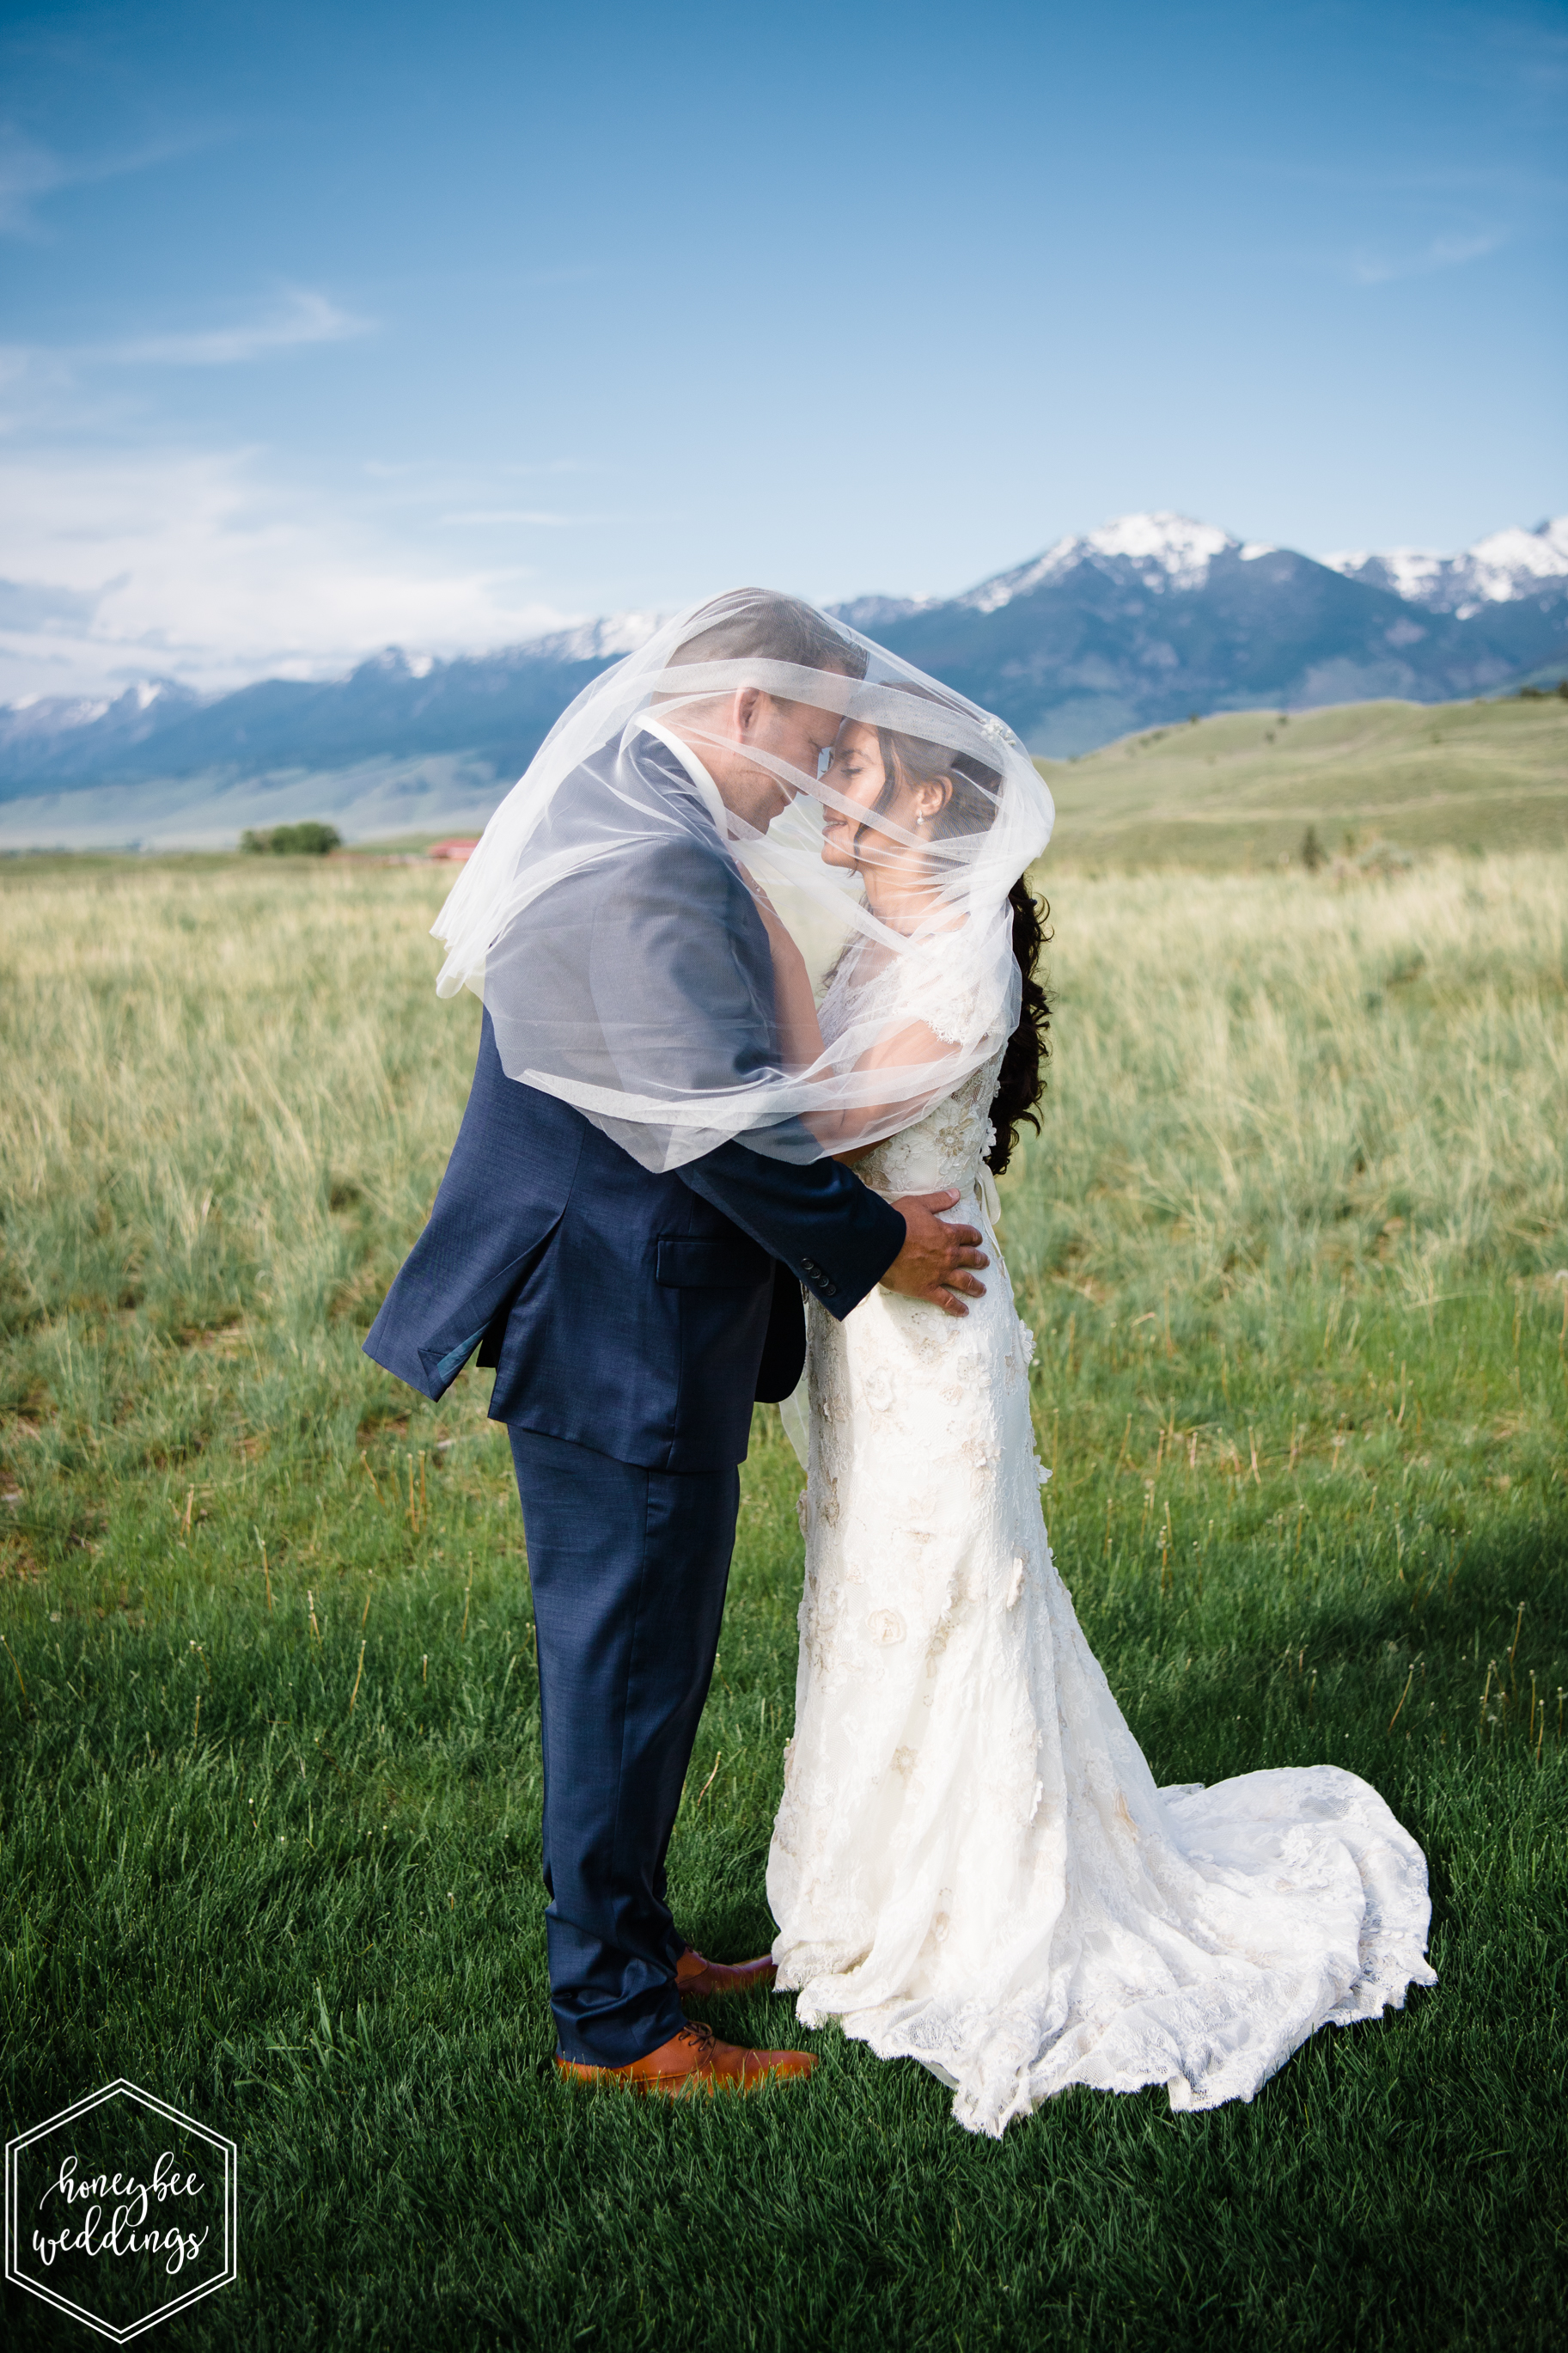 019Montana wedding photographer videographer_Chico hot springs wedding_Honeybee Weddings_Claudia & Bill_June 03, 2019-531.jpg